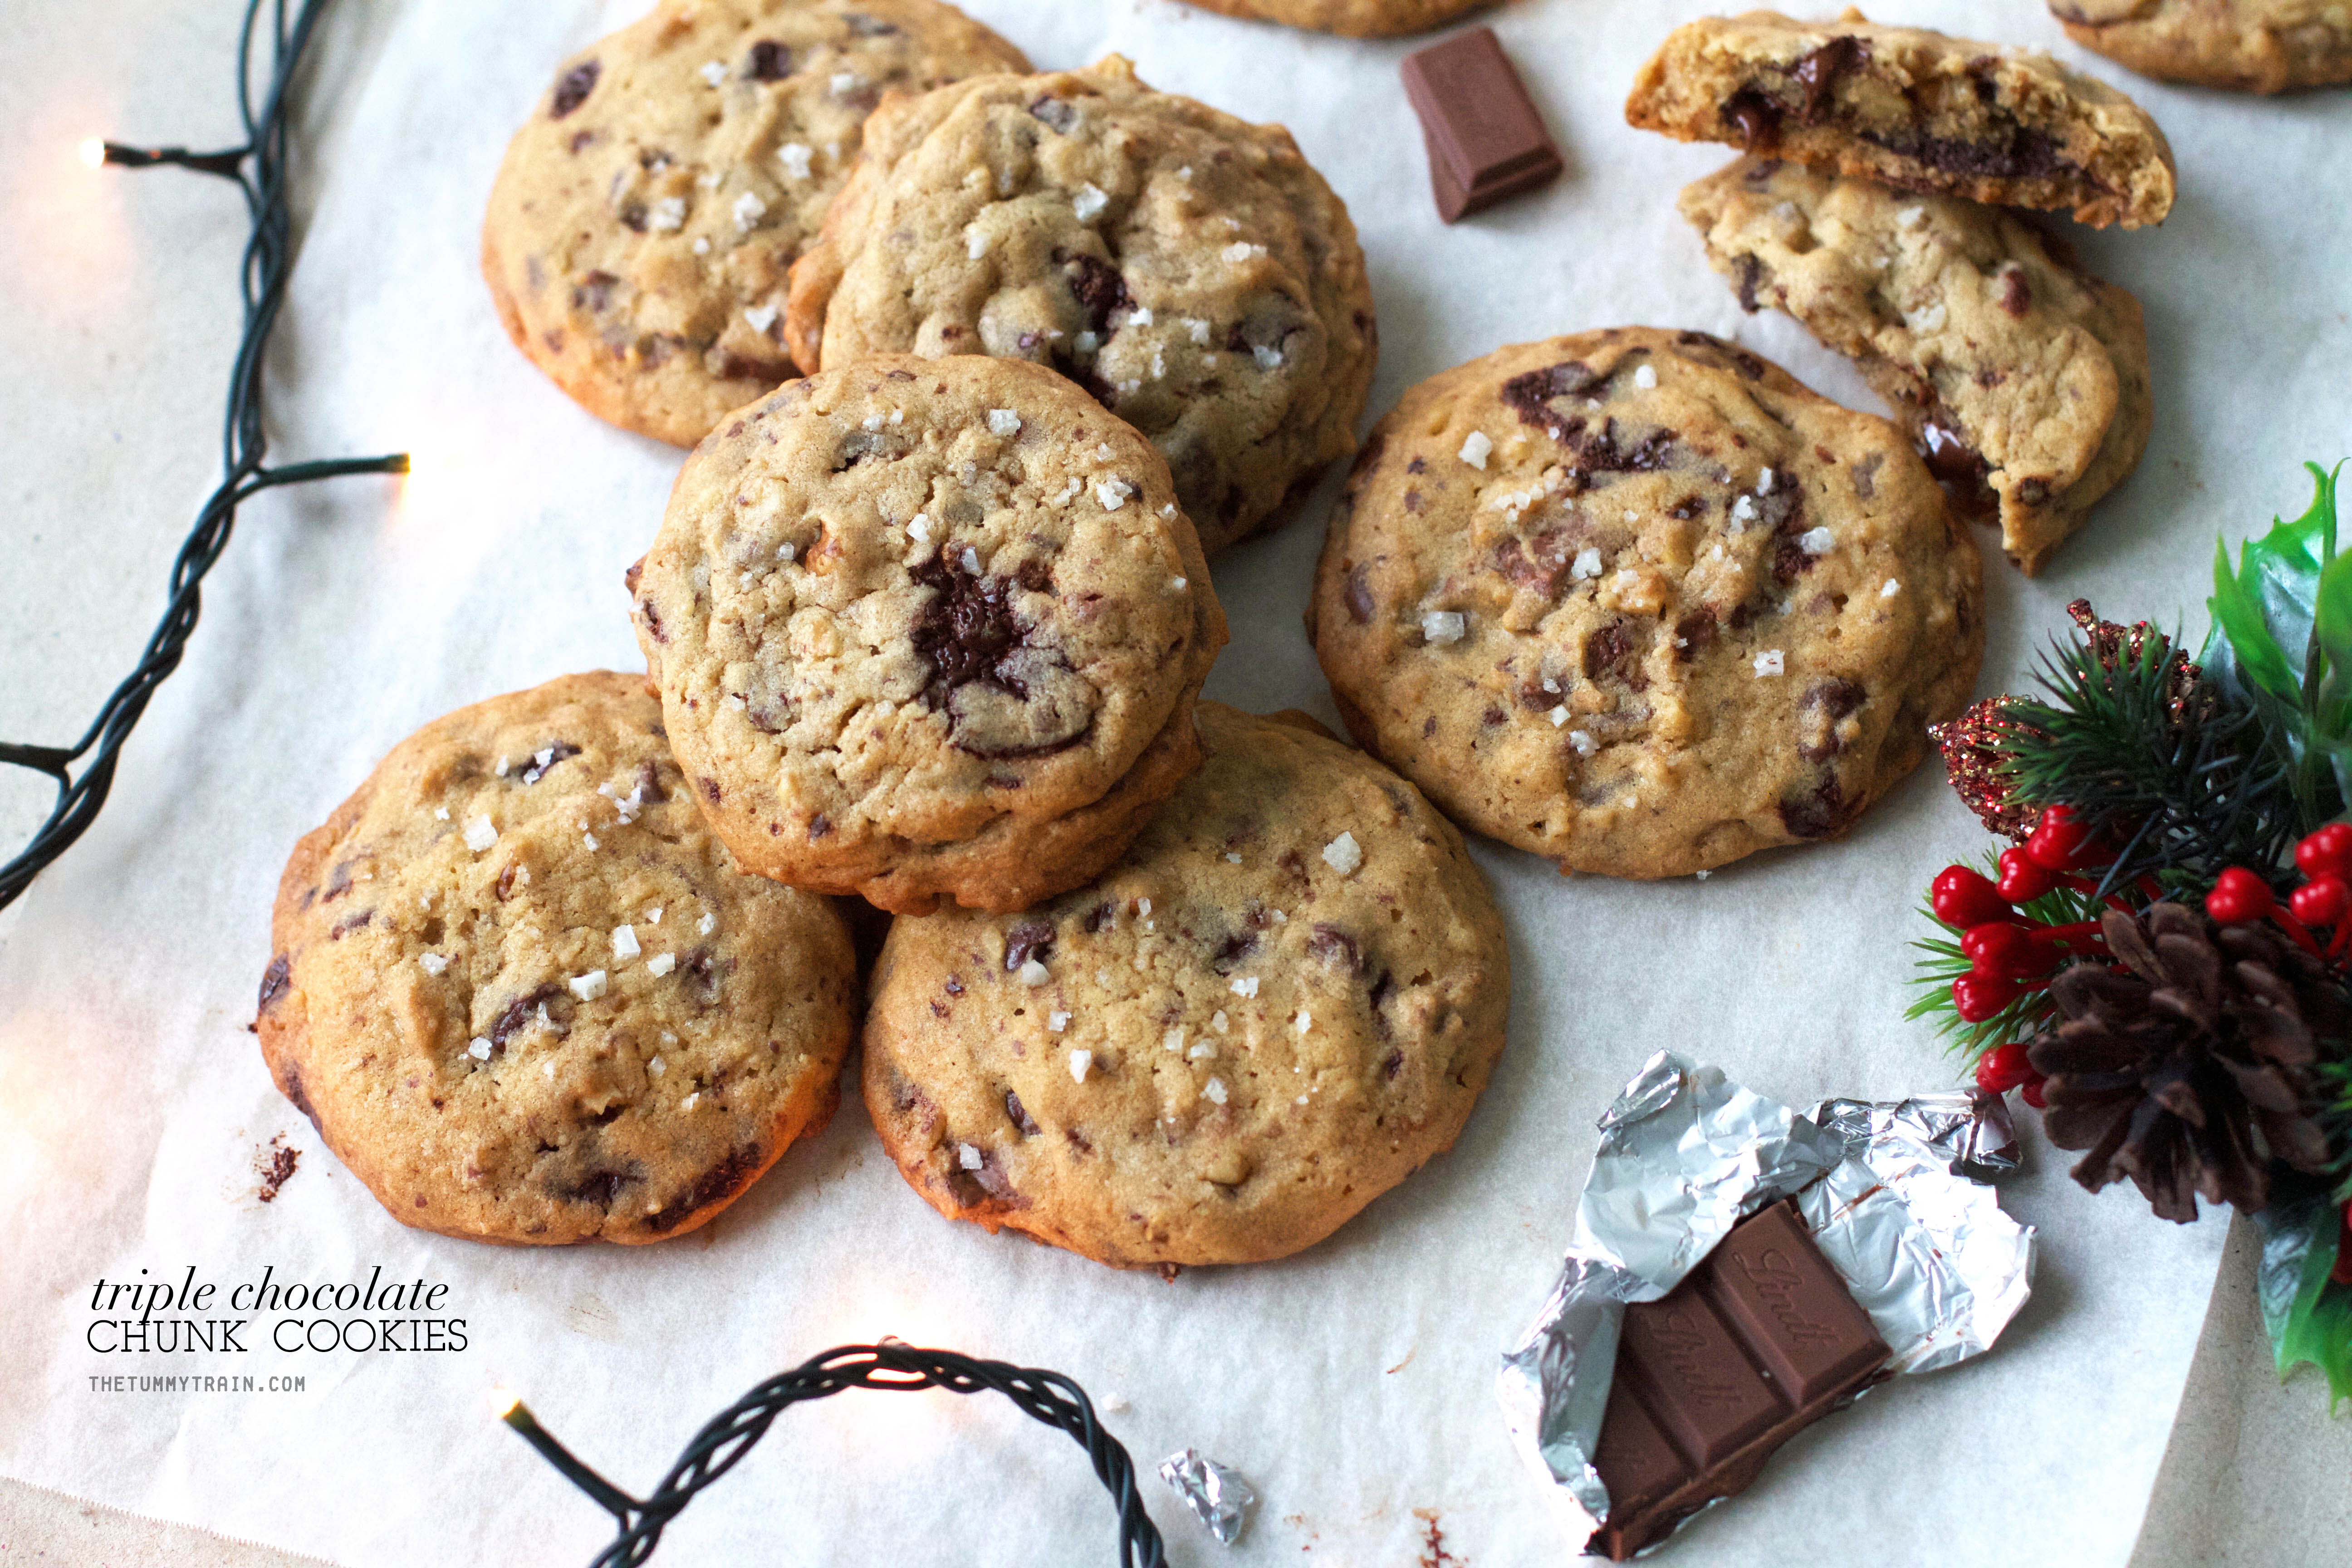 Triple Choco Chunk Cookies 1 - A bit of holiday indulgence with these Triple Chocolate Chunk Cookies